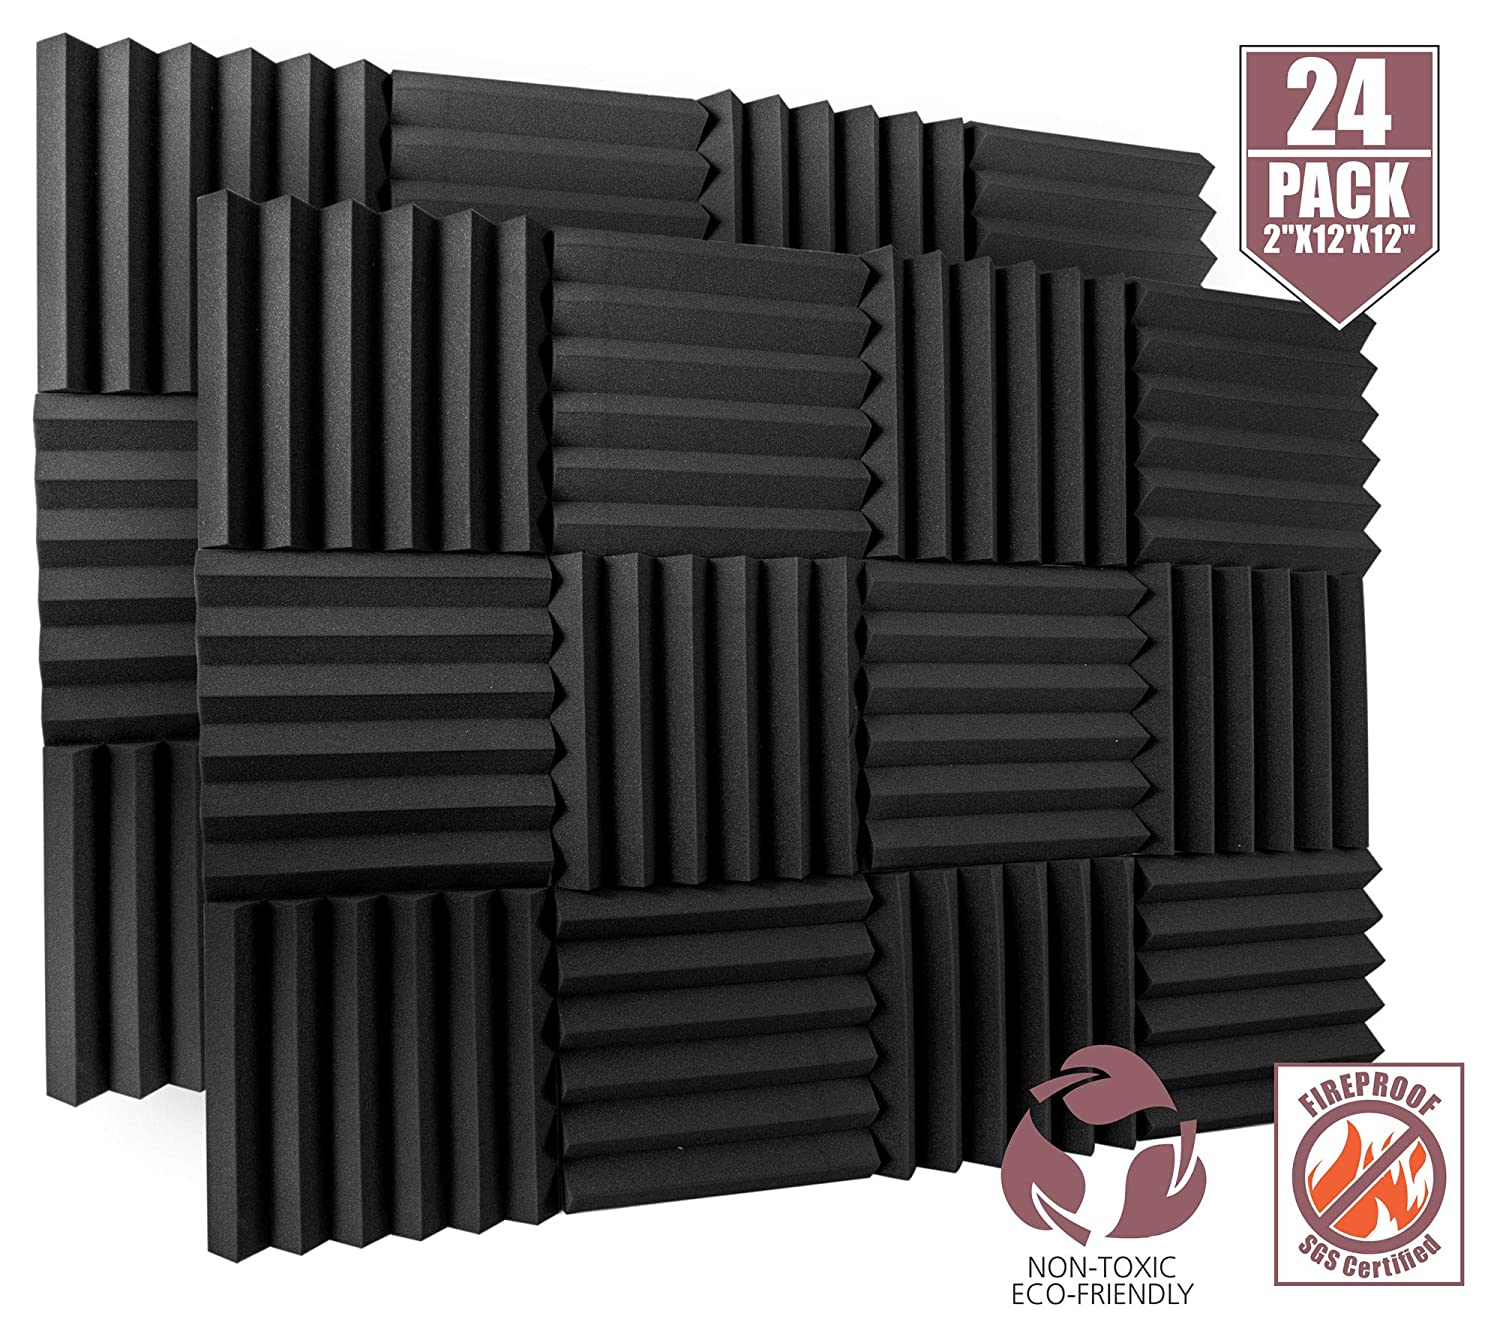 "24 Pack Acoustic Foam Panels 2"" X 12"" X 12"" Fireproof - SGS Certified - Soundproofing Studio Foam Wedge Tiles - Top Quality - Ideal for Home & Studio Sound Insulation High Density 1,57 pound/CBF 81kjwUfN4%2BL"